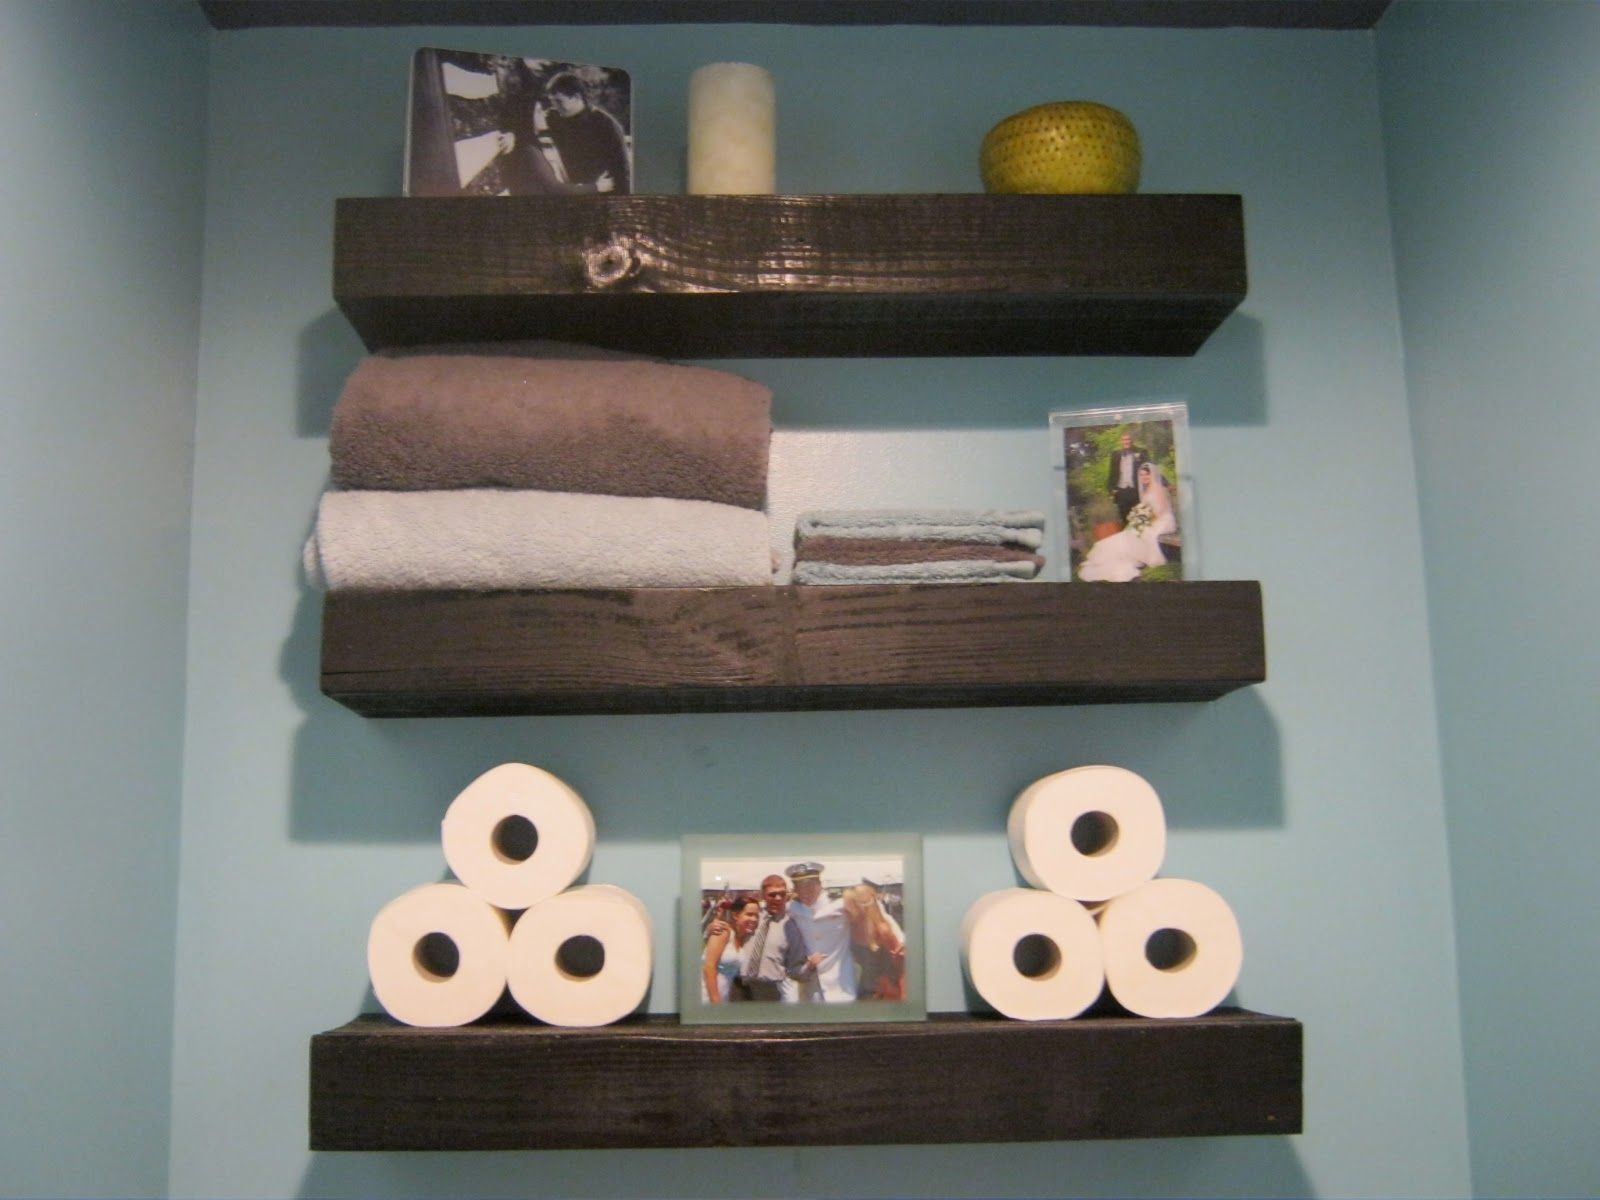 easy diy bathroom projects | wood floating shelves, bathroom gray